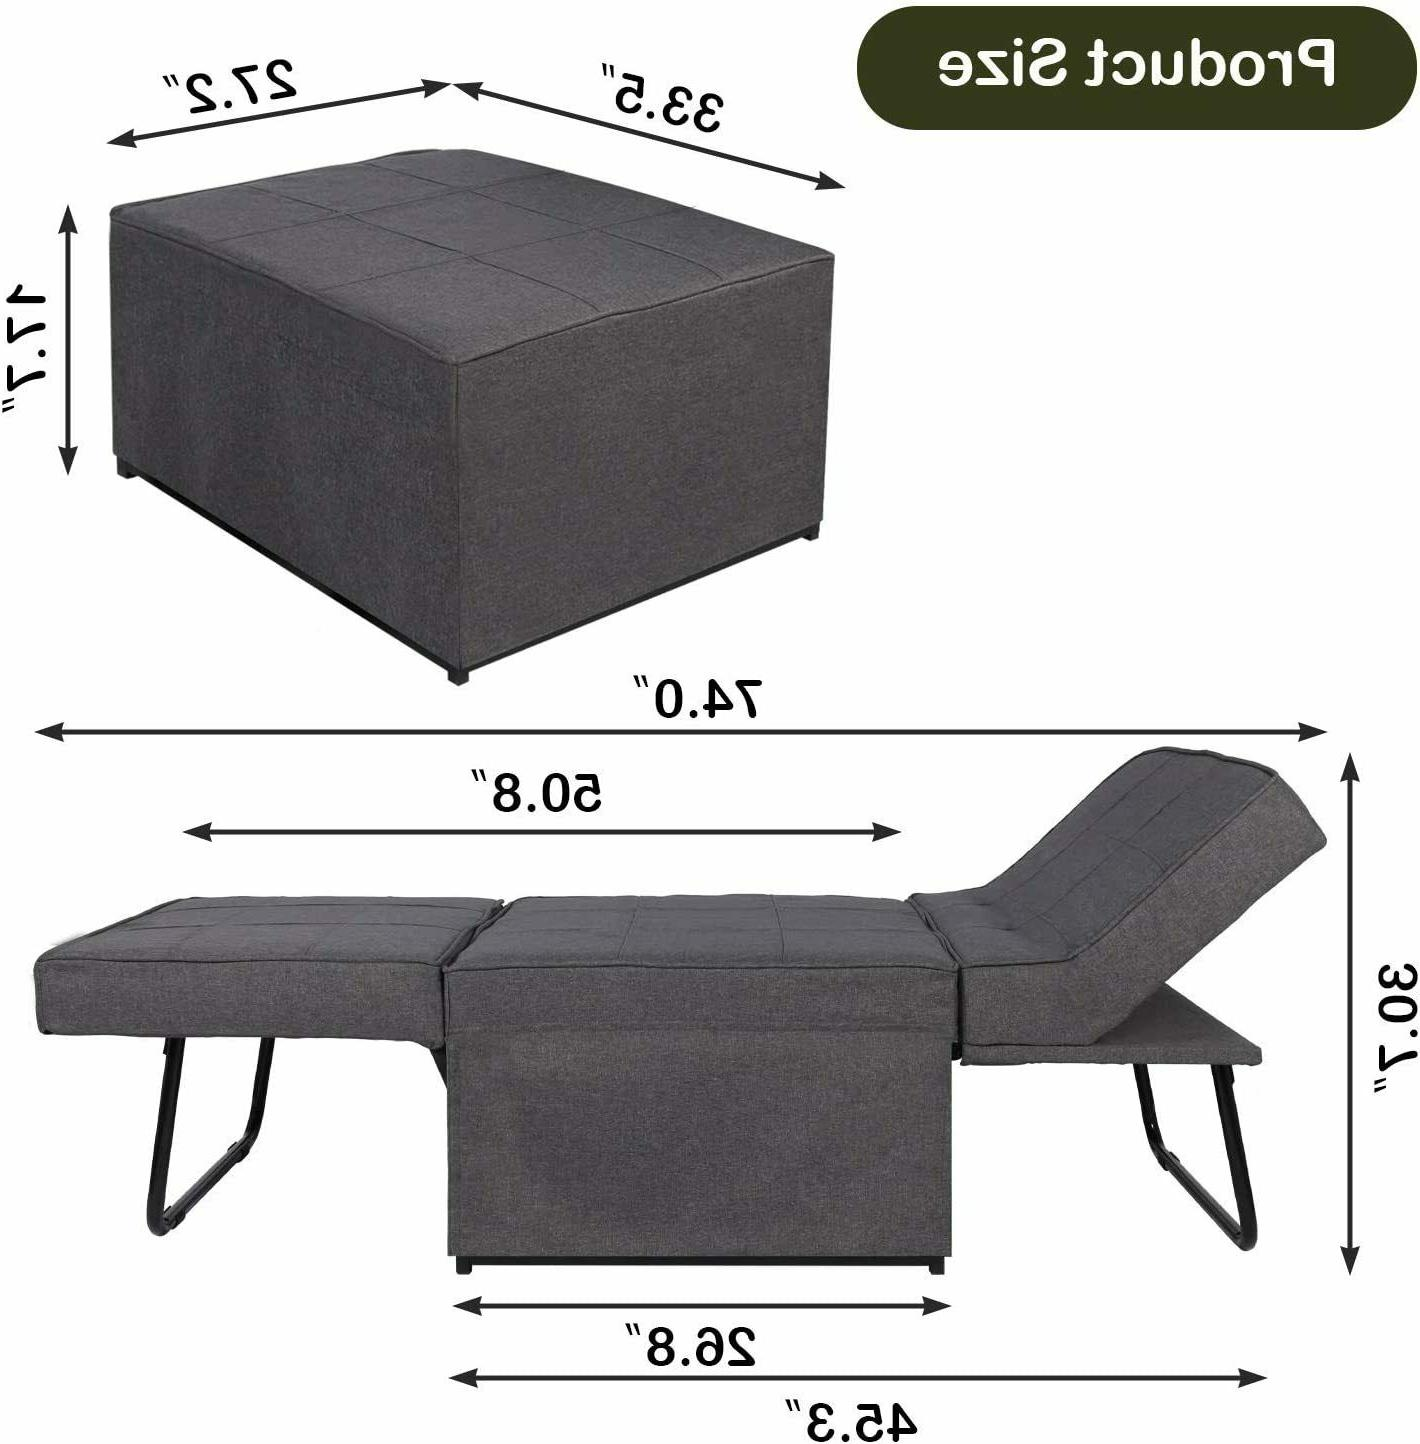 4-in-1 Bed, Sleeper Lounger Chair Ottoman